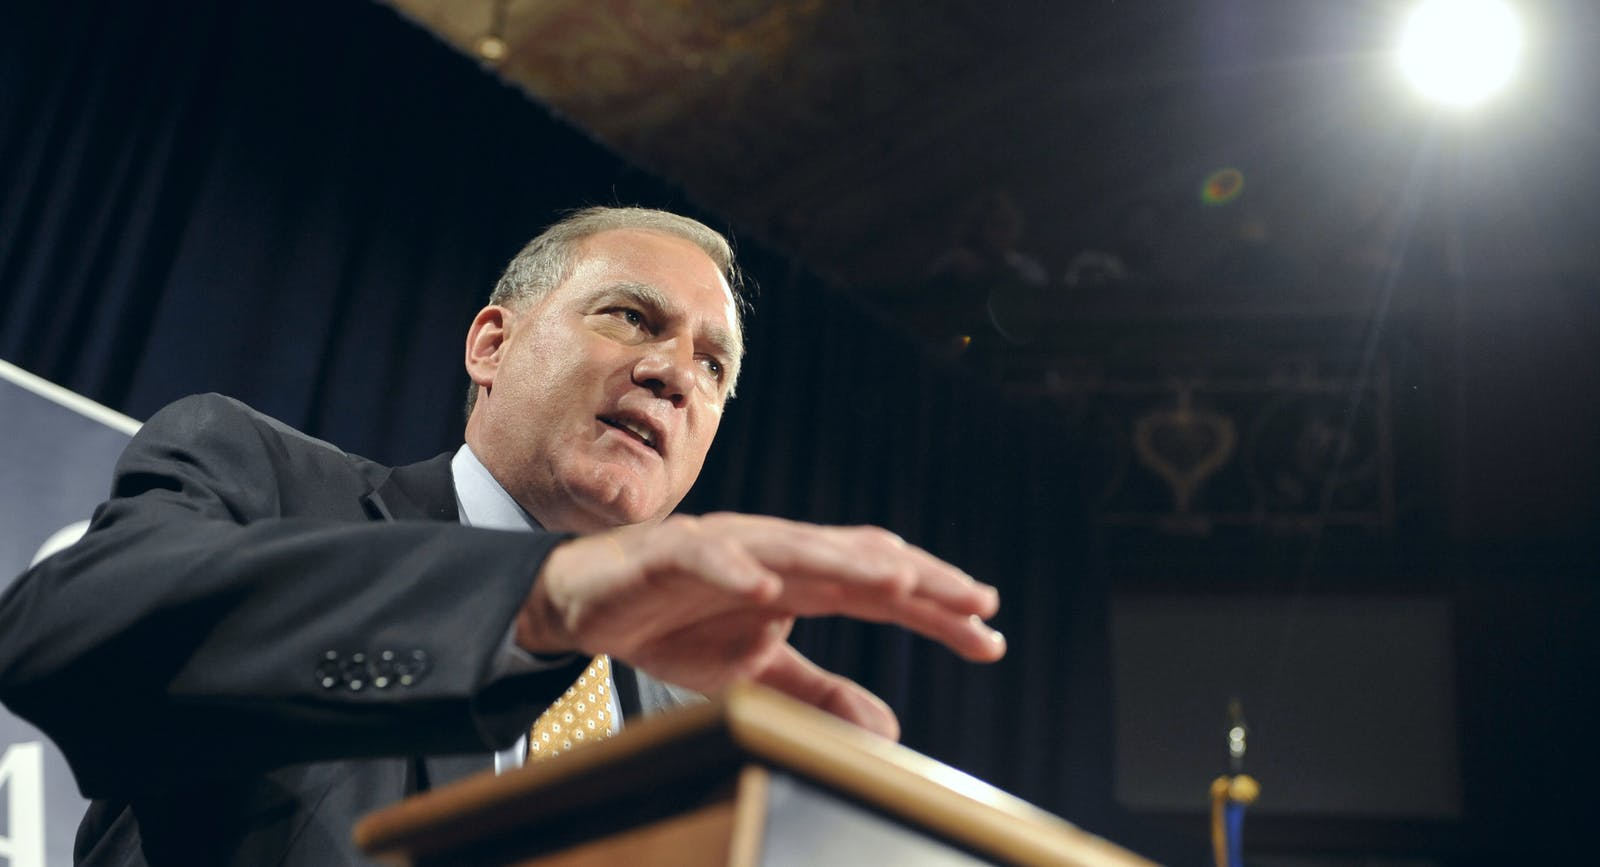 Connecticut Attorney General George Jepsen. Photo by Associated Press.